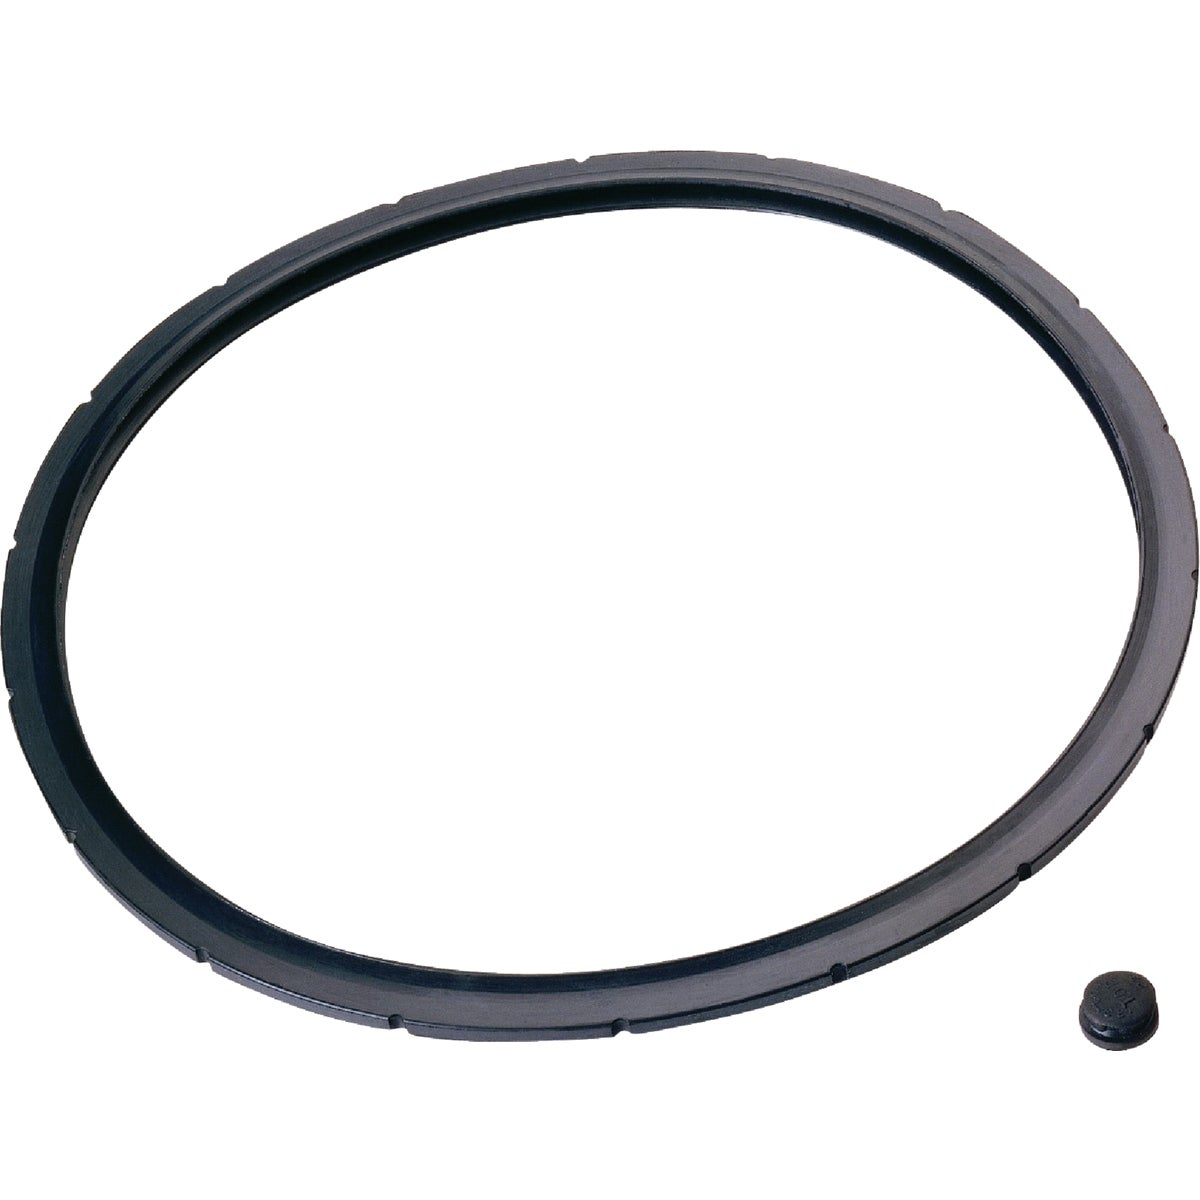 SEALING RING - 09903 by National Presto